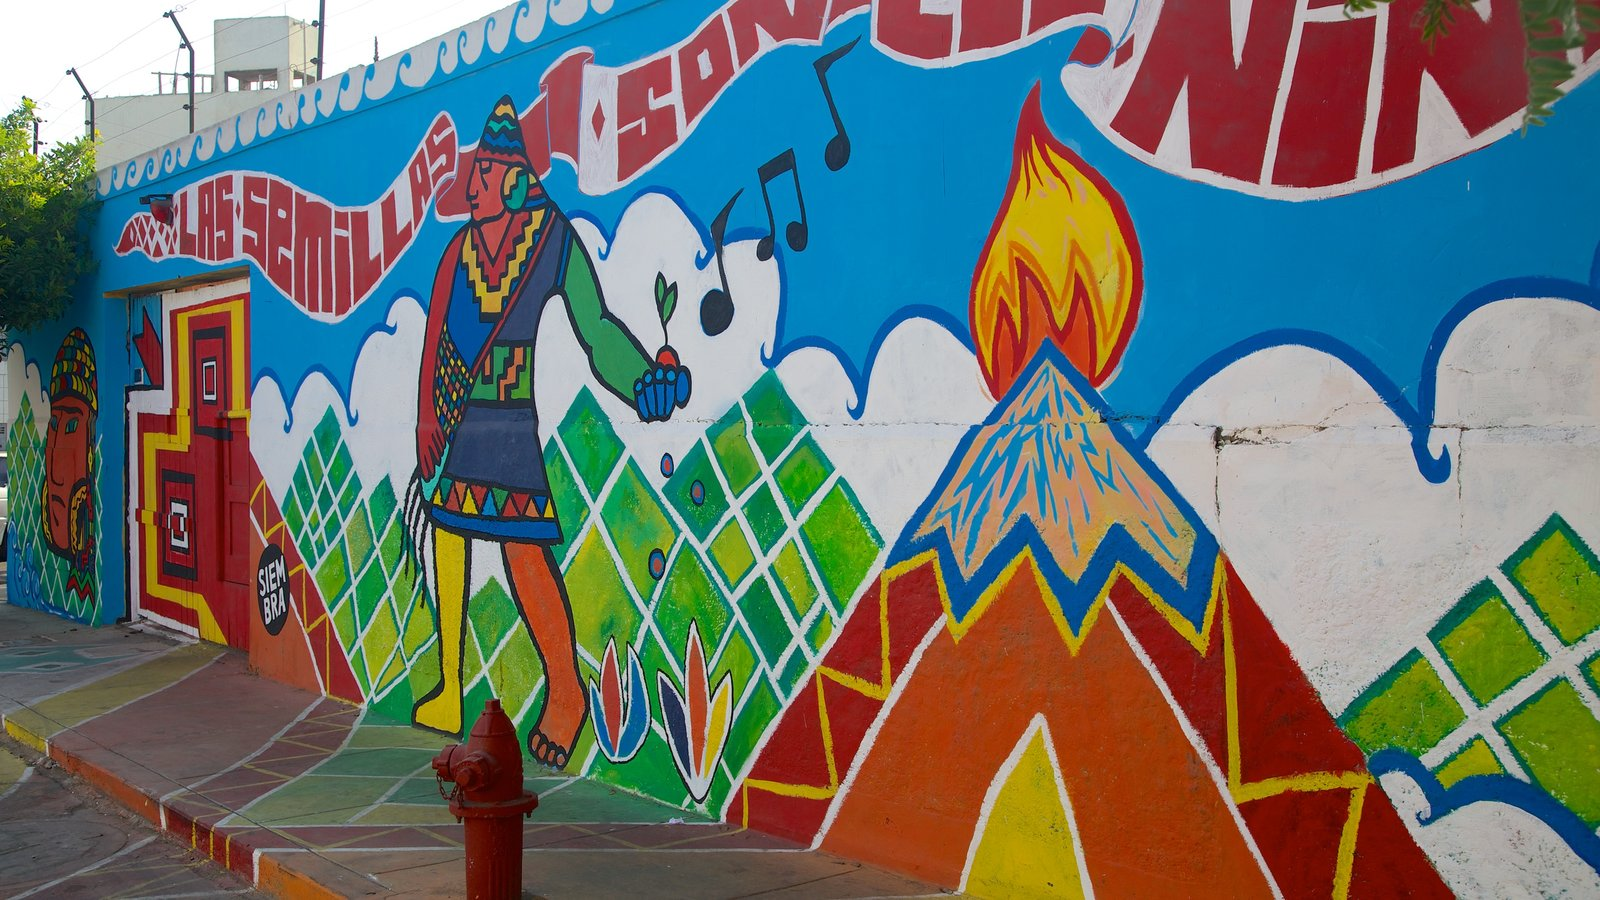 Barranco which includes street scenes and outdoor art